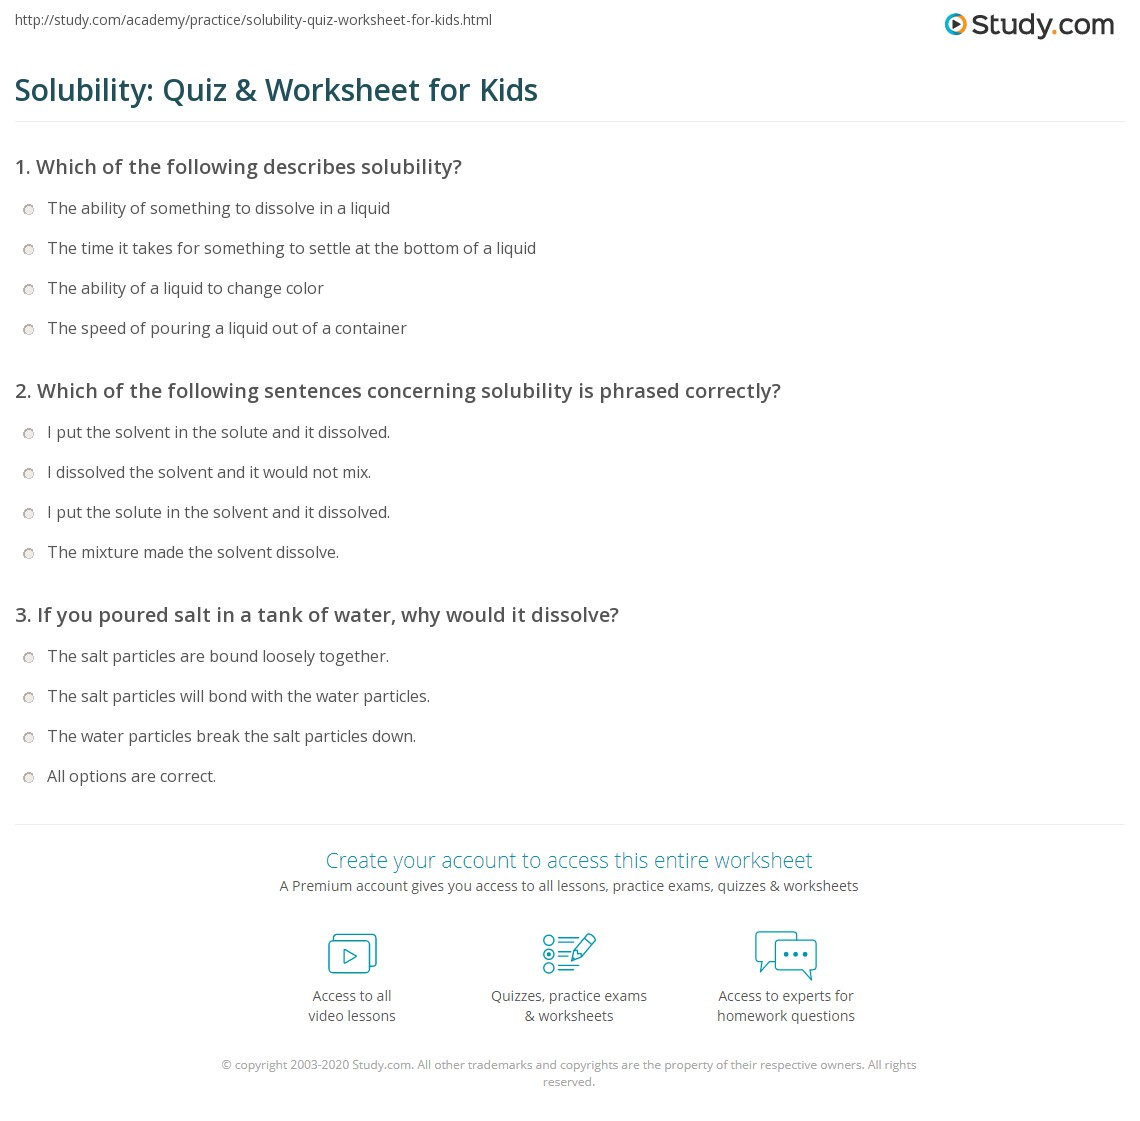 Solubility: Quiz & Worksheet for Kids | Study.com